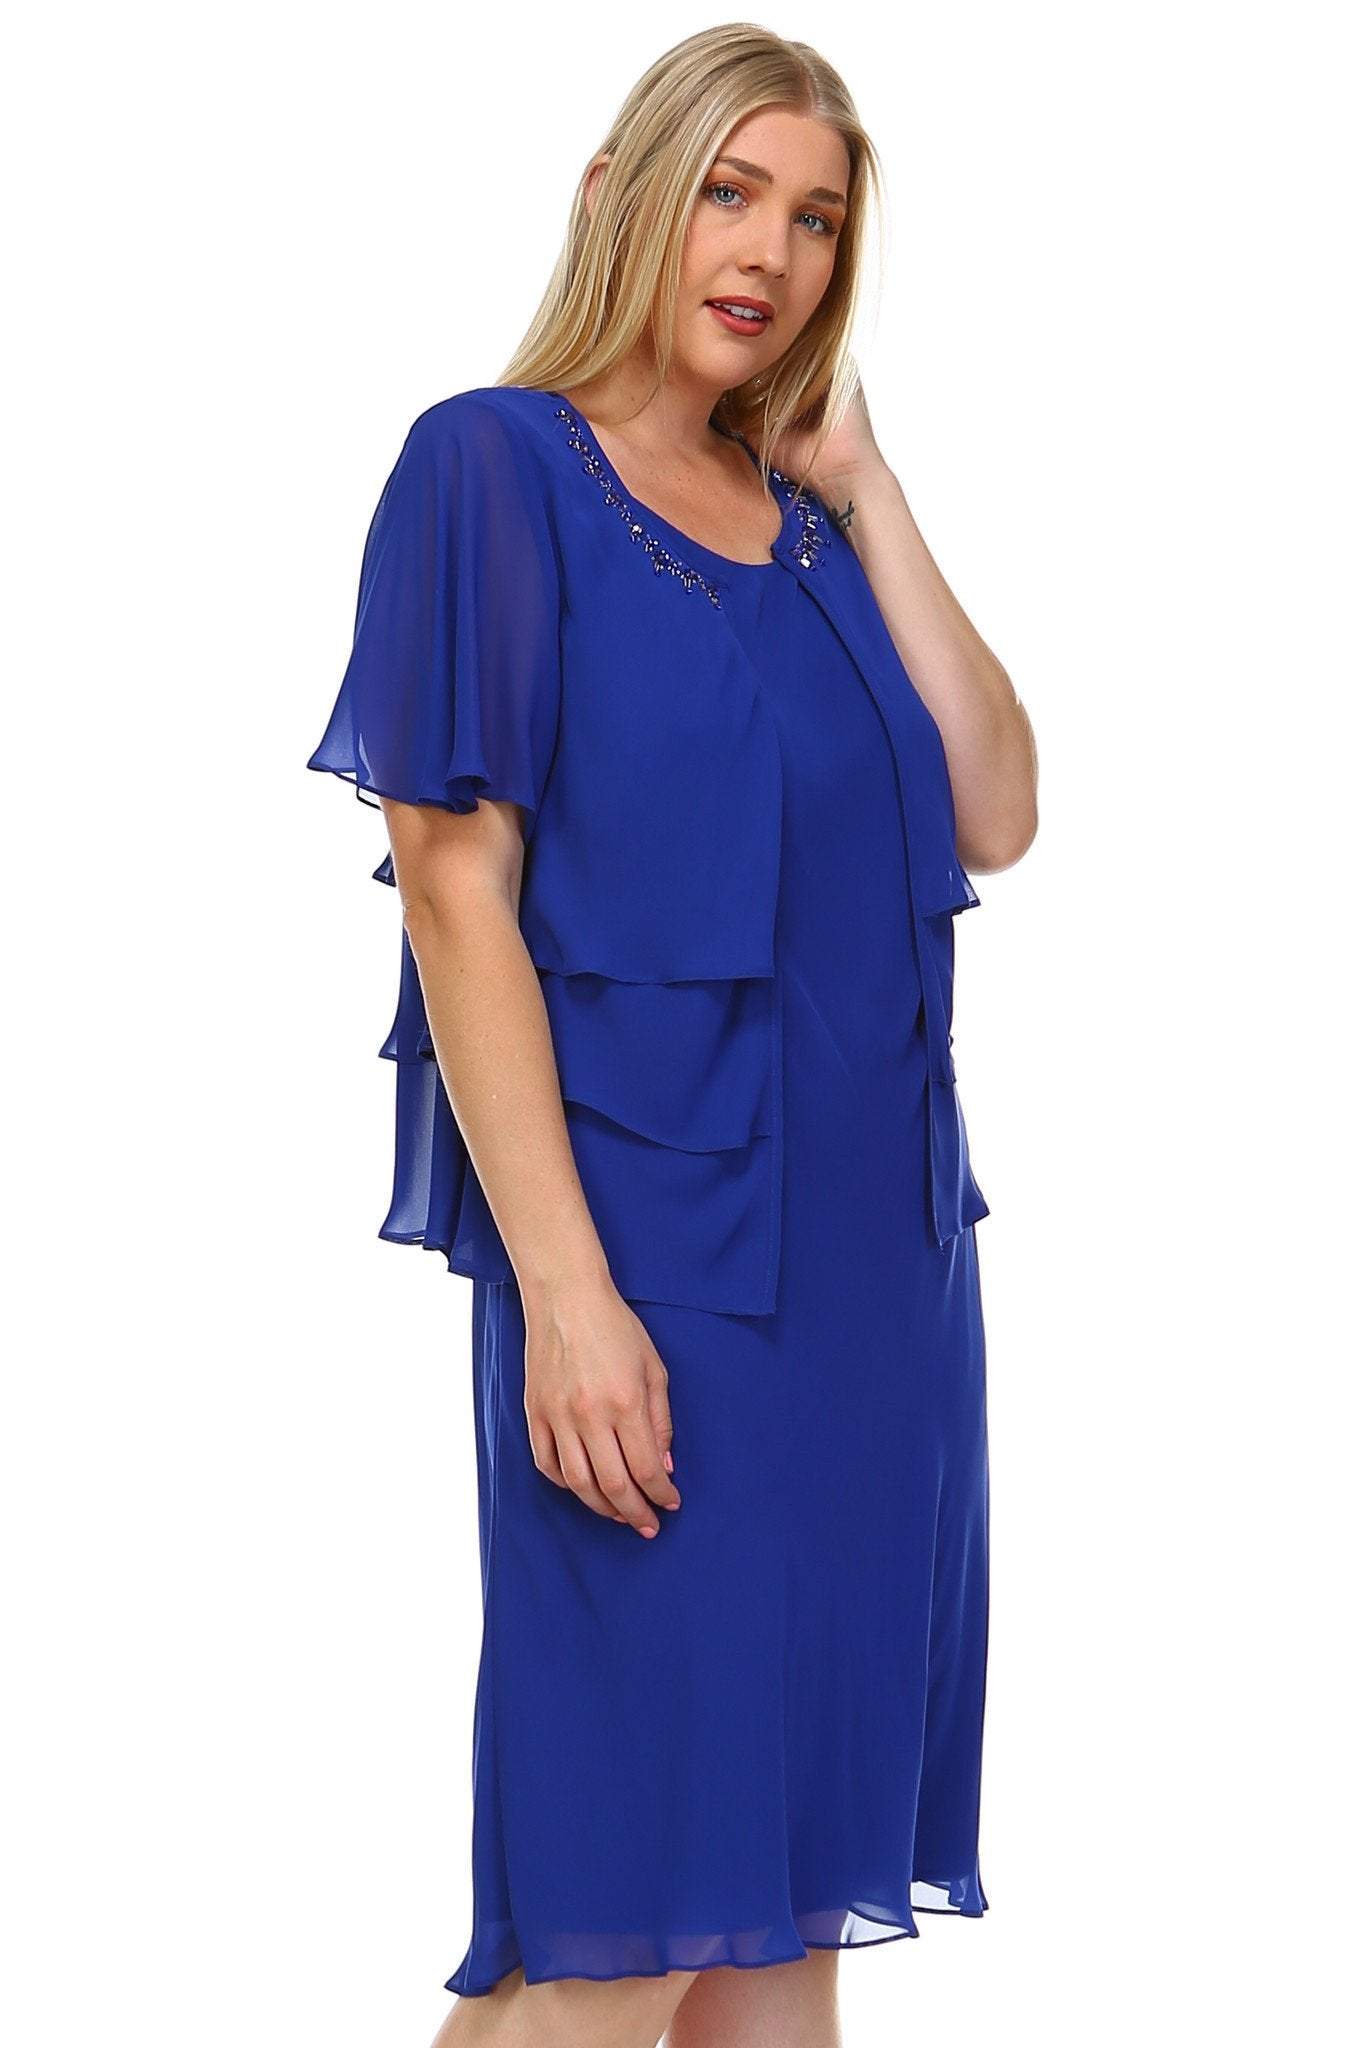 Women's Plus Size Chiffon Dress w/ Beaded Neckline Chiffon Blazer